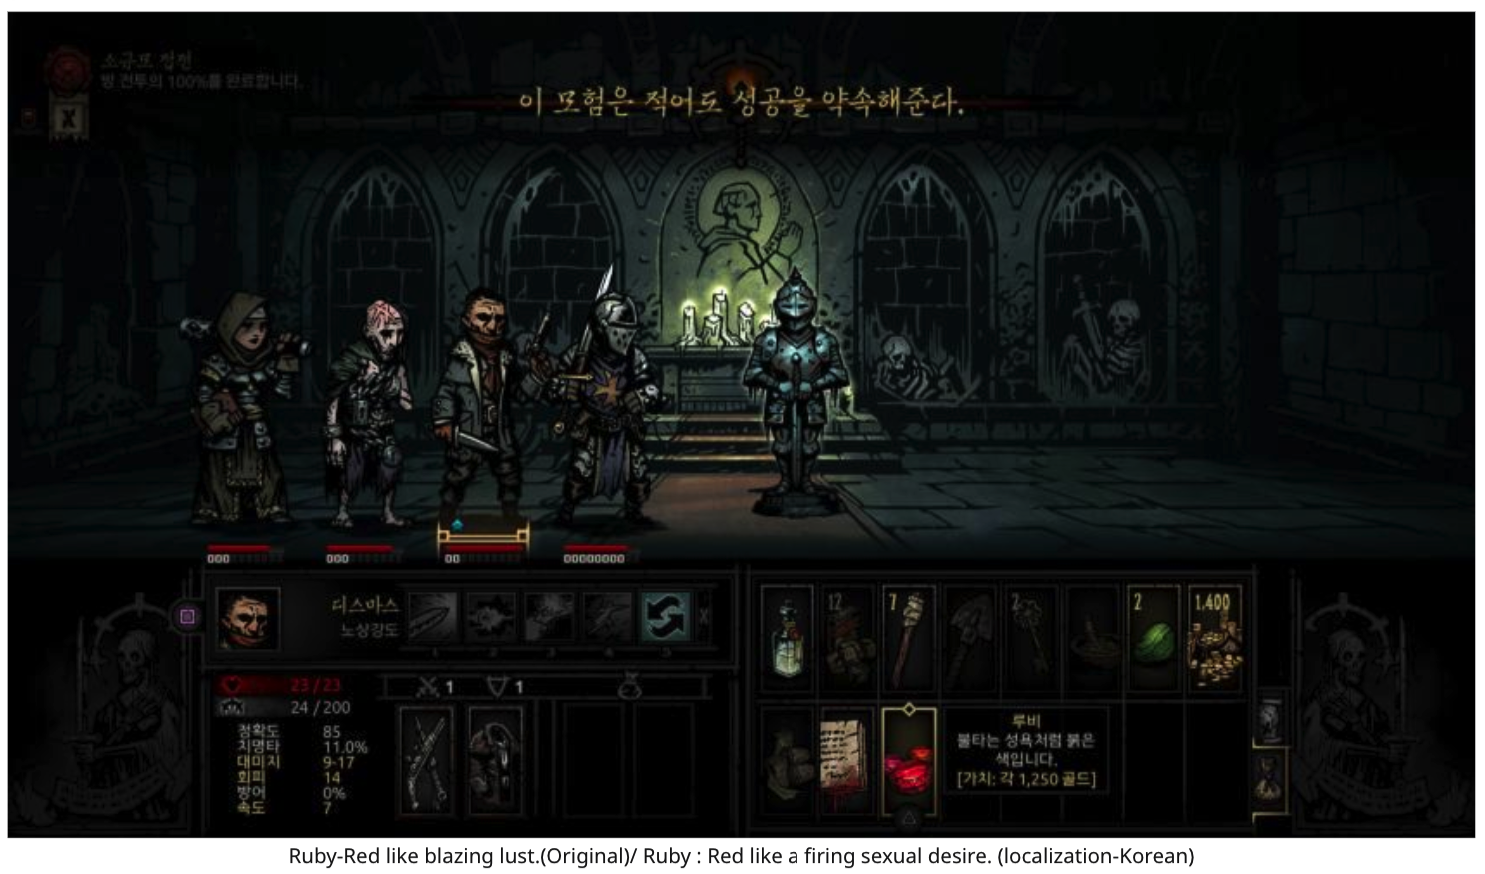 Darkest Dungeon Korean game localization screenshot